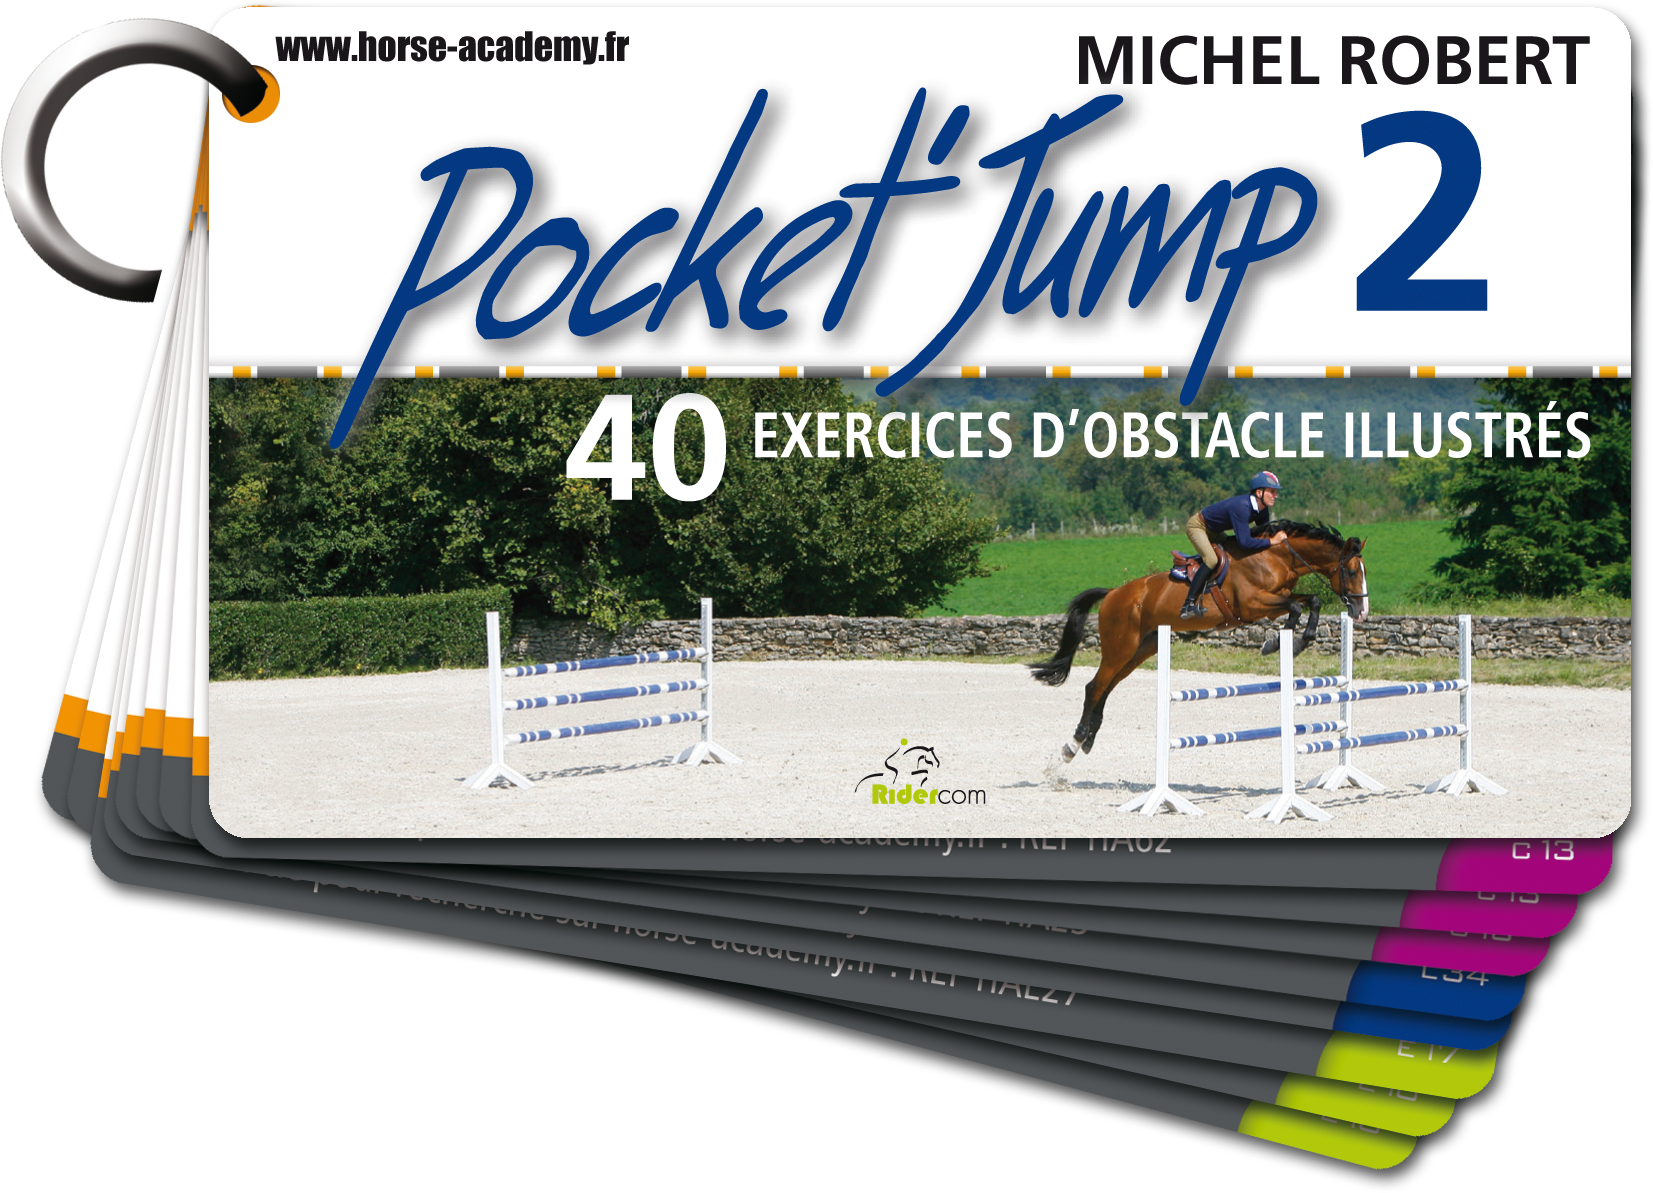 Pocket'Jump 2, 40 exercices d'obstacle illustrés